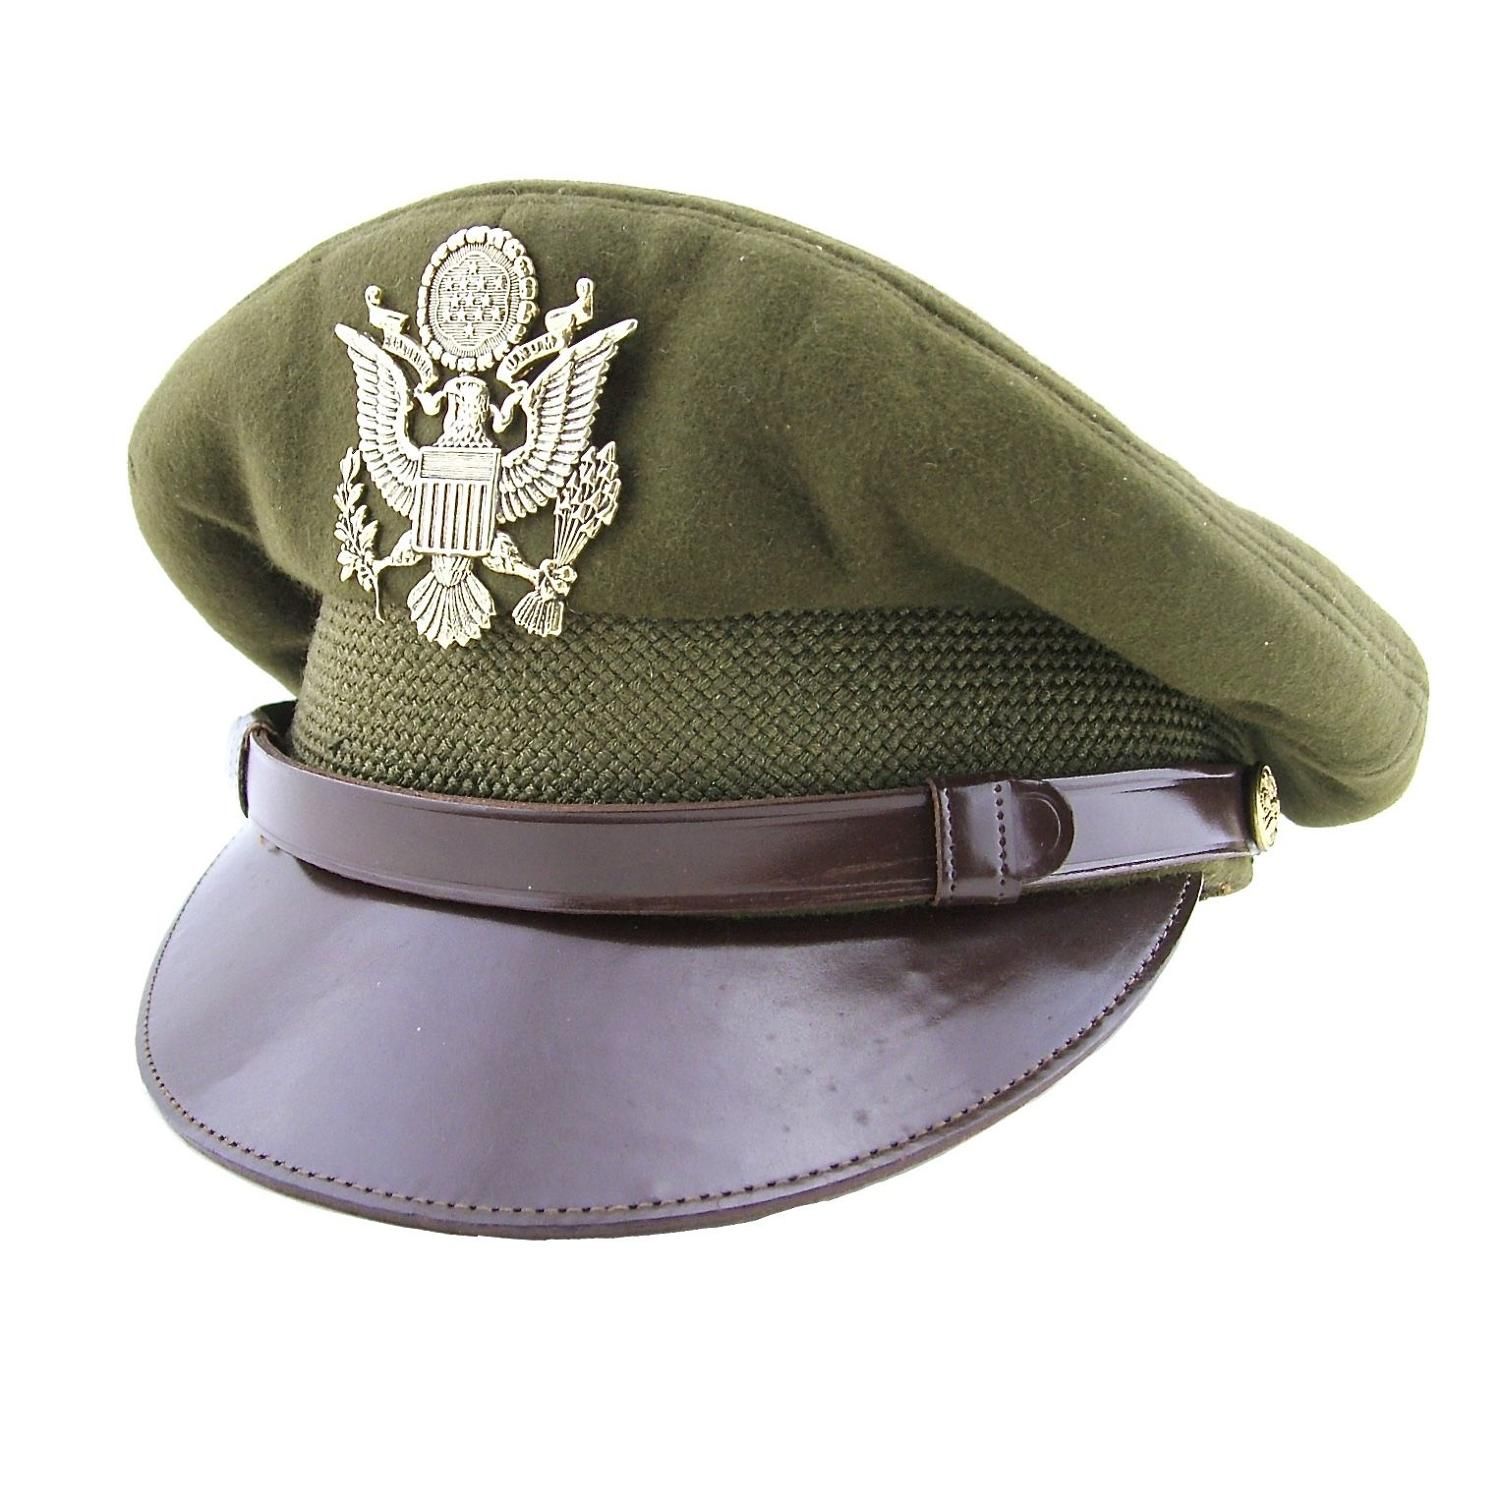 USAAF Officer rank visor cap